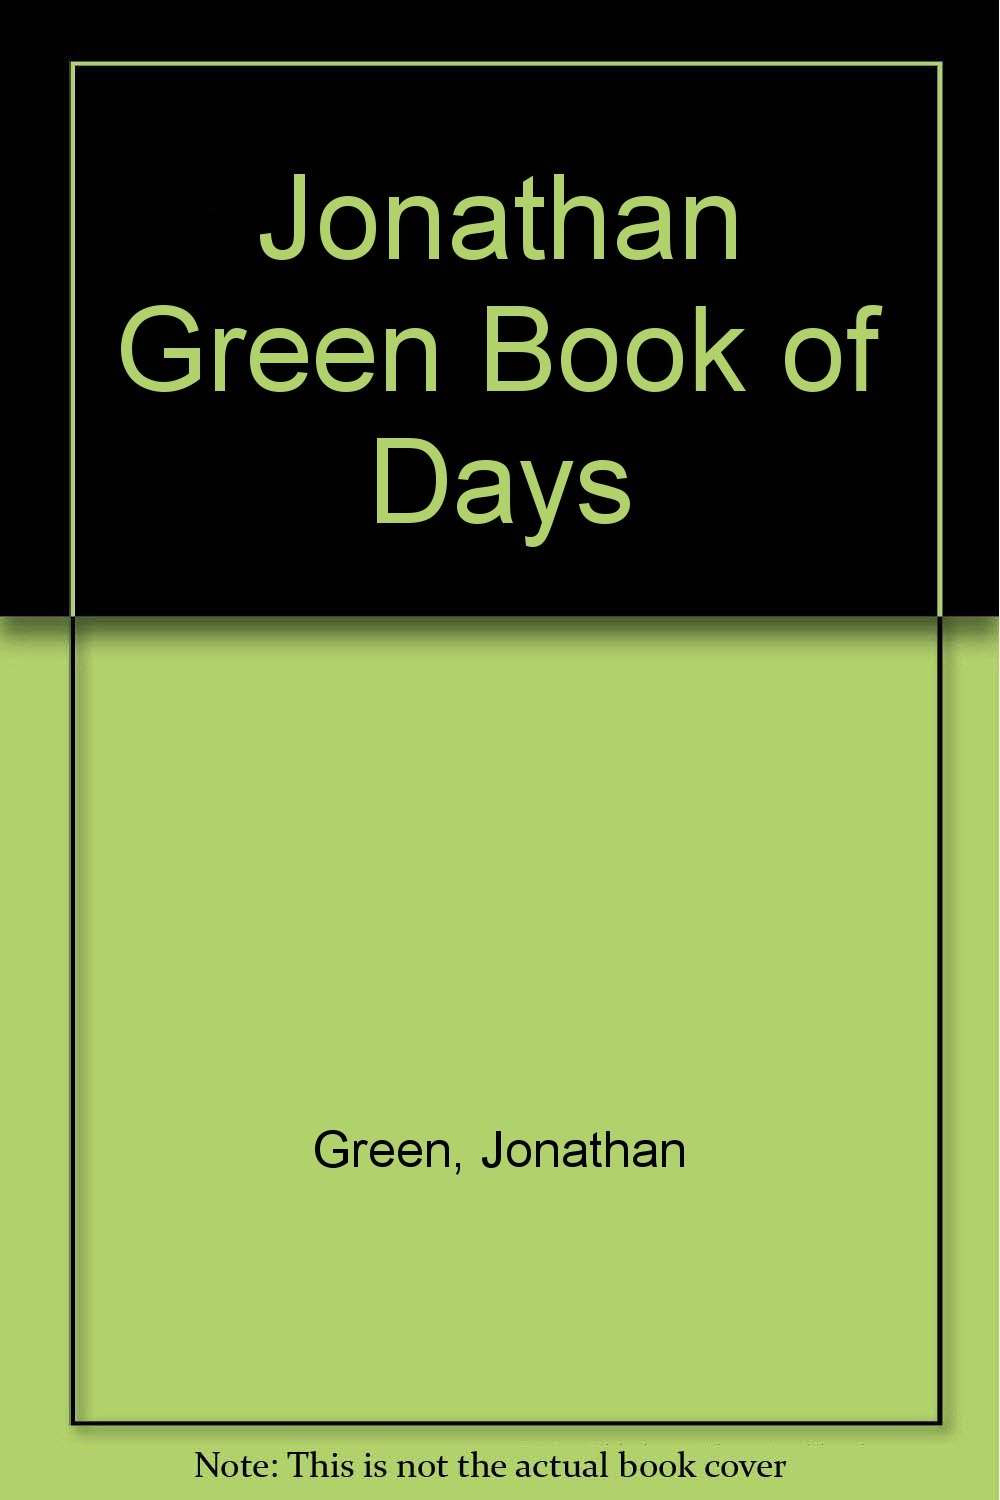 jonathan green book of days